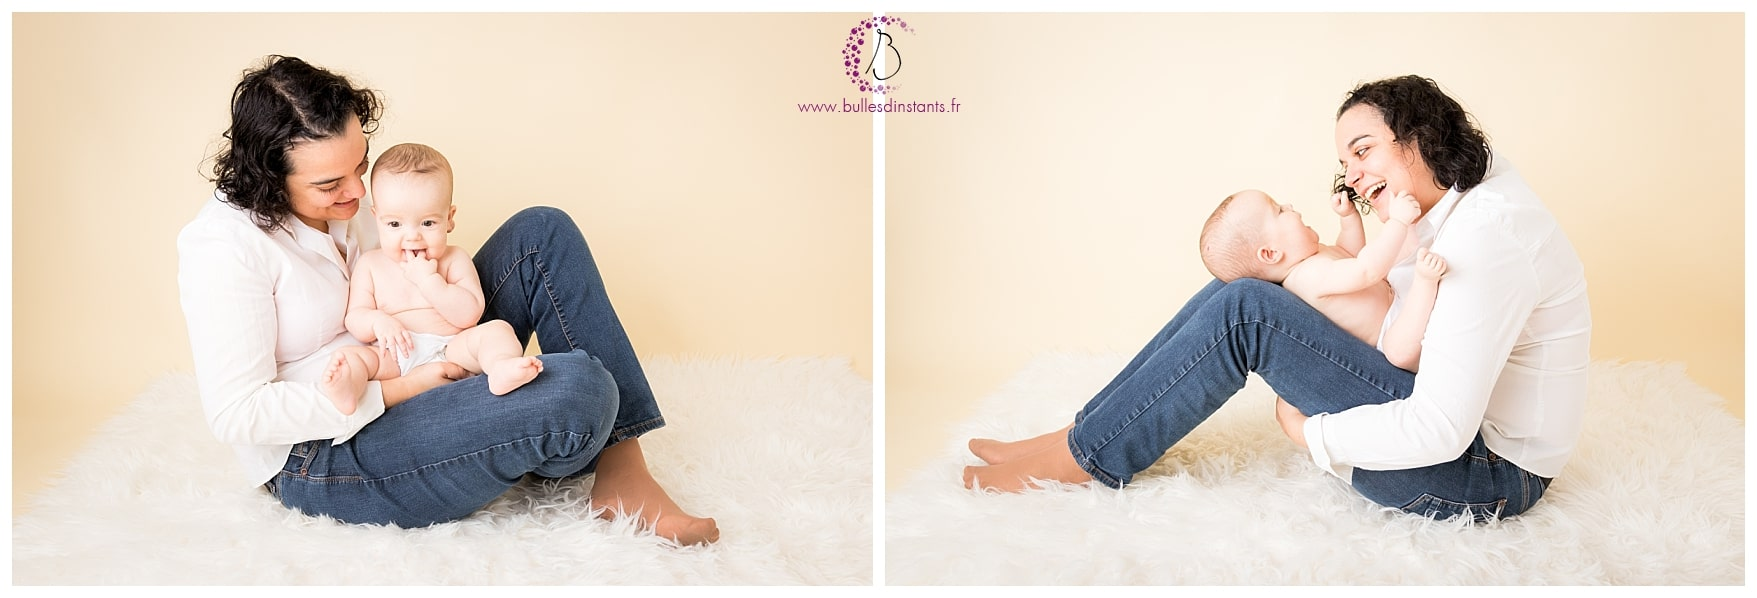 seance-photo-maman-bebe-studio-yvelines